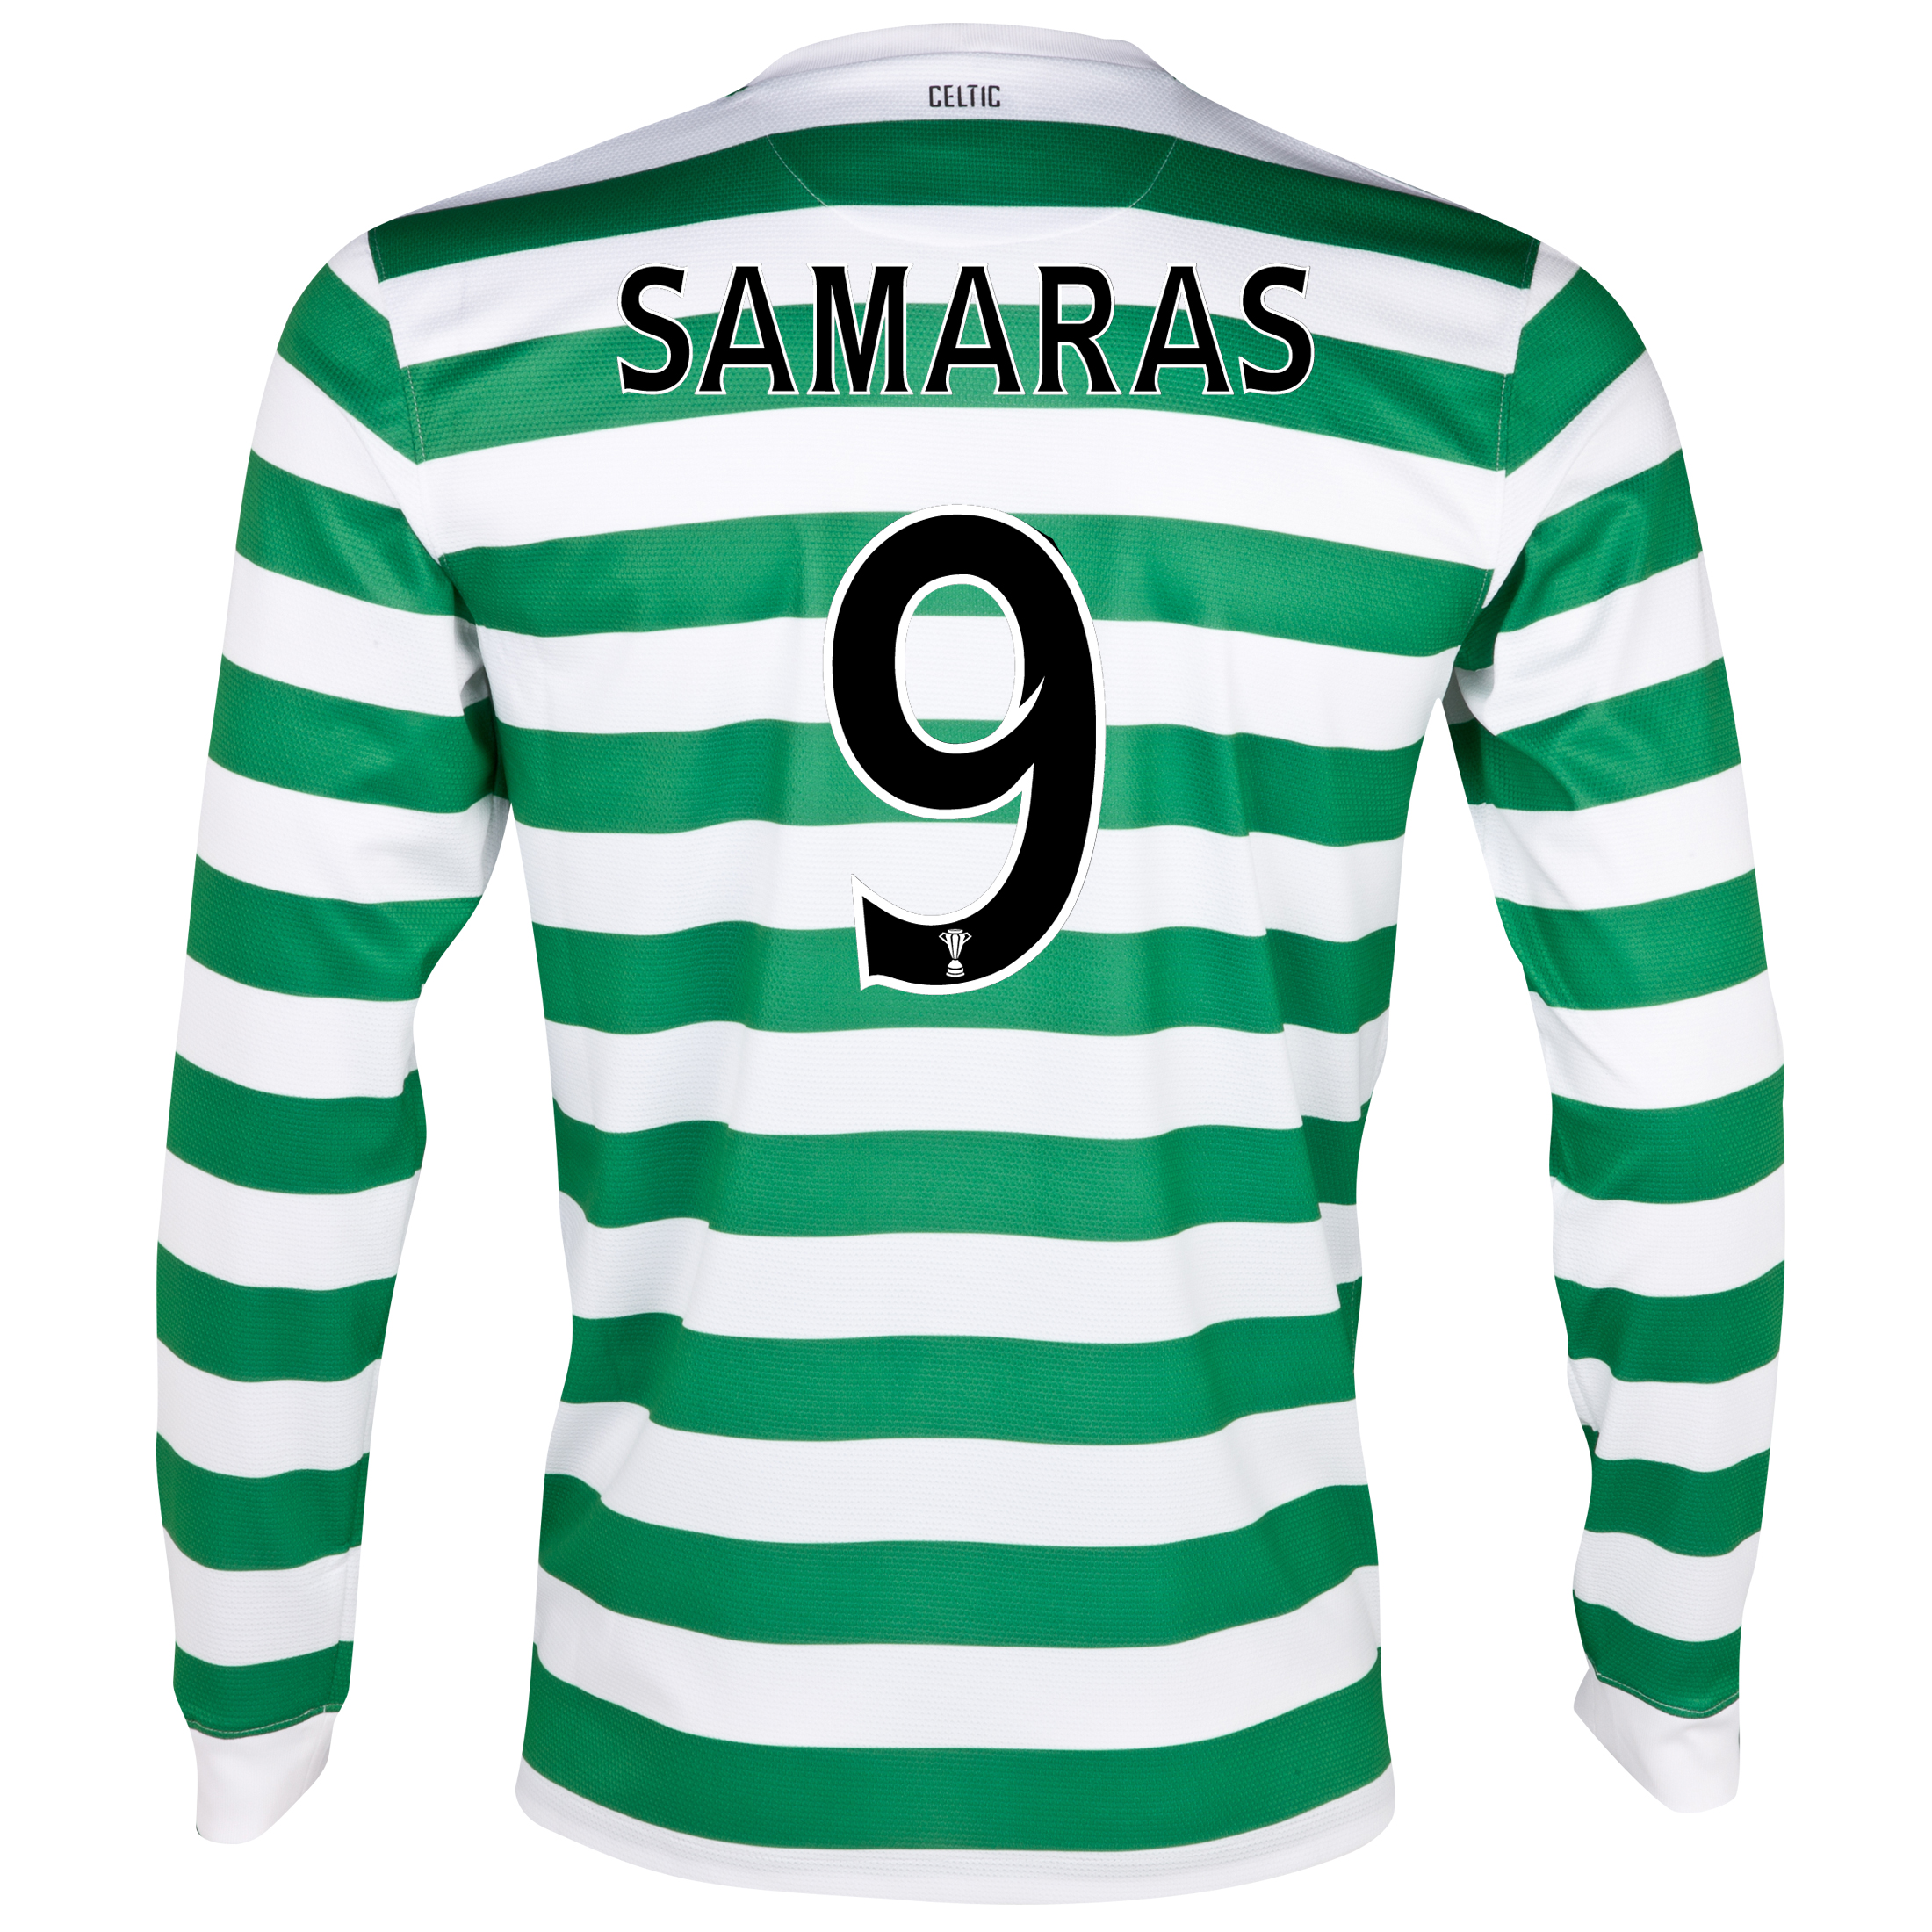 Celtic Home Shirt 2012/13 - Long Sleeved - No Sponsor with Samaras 9 printing